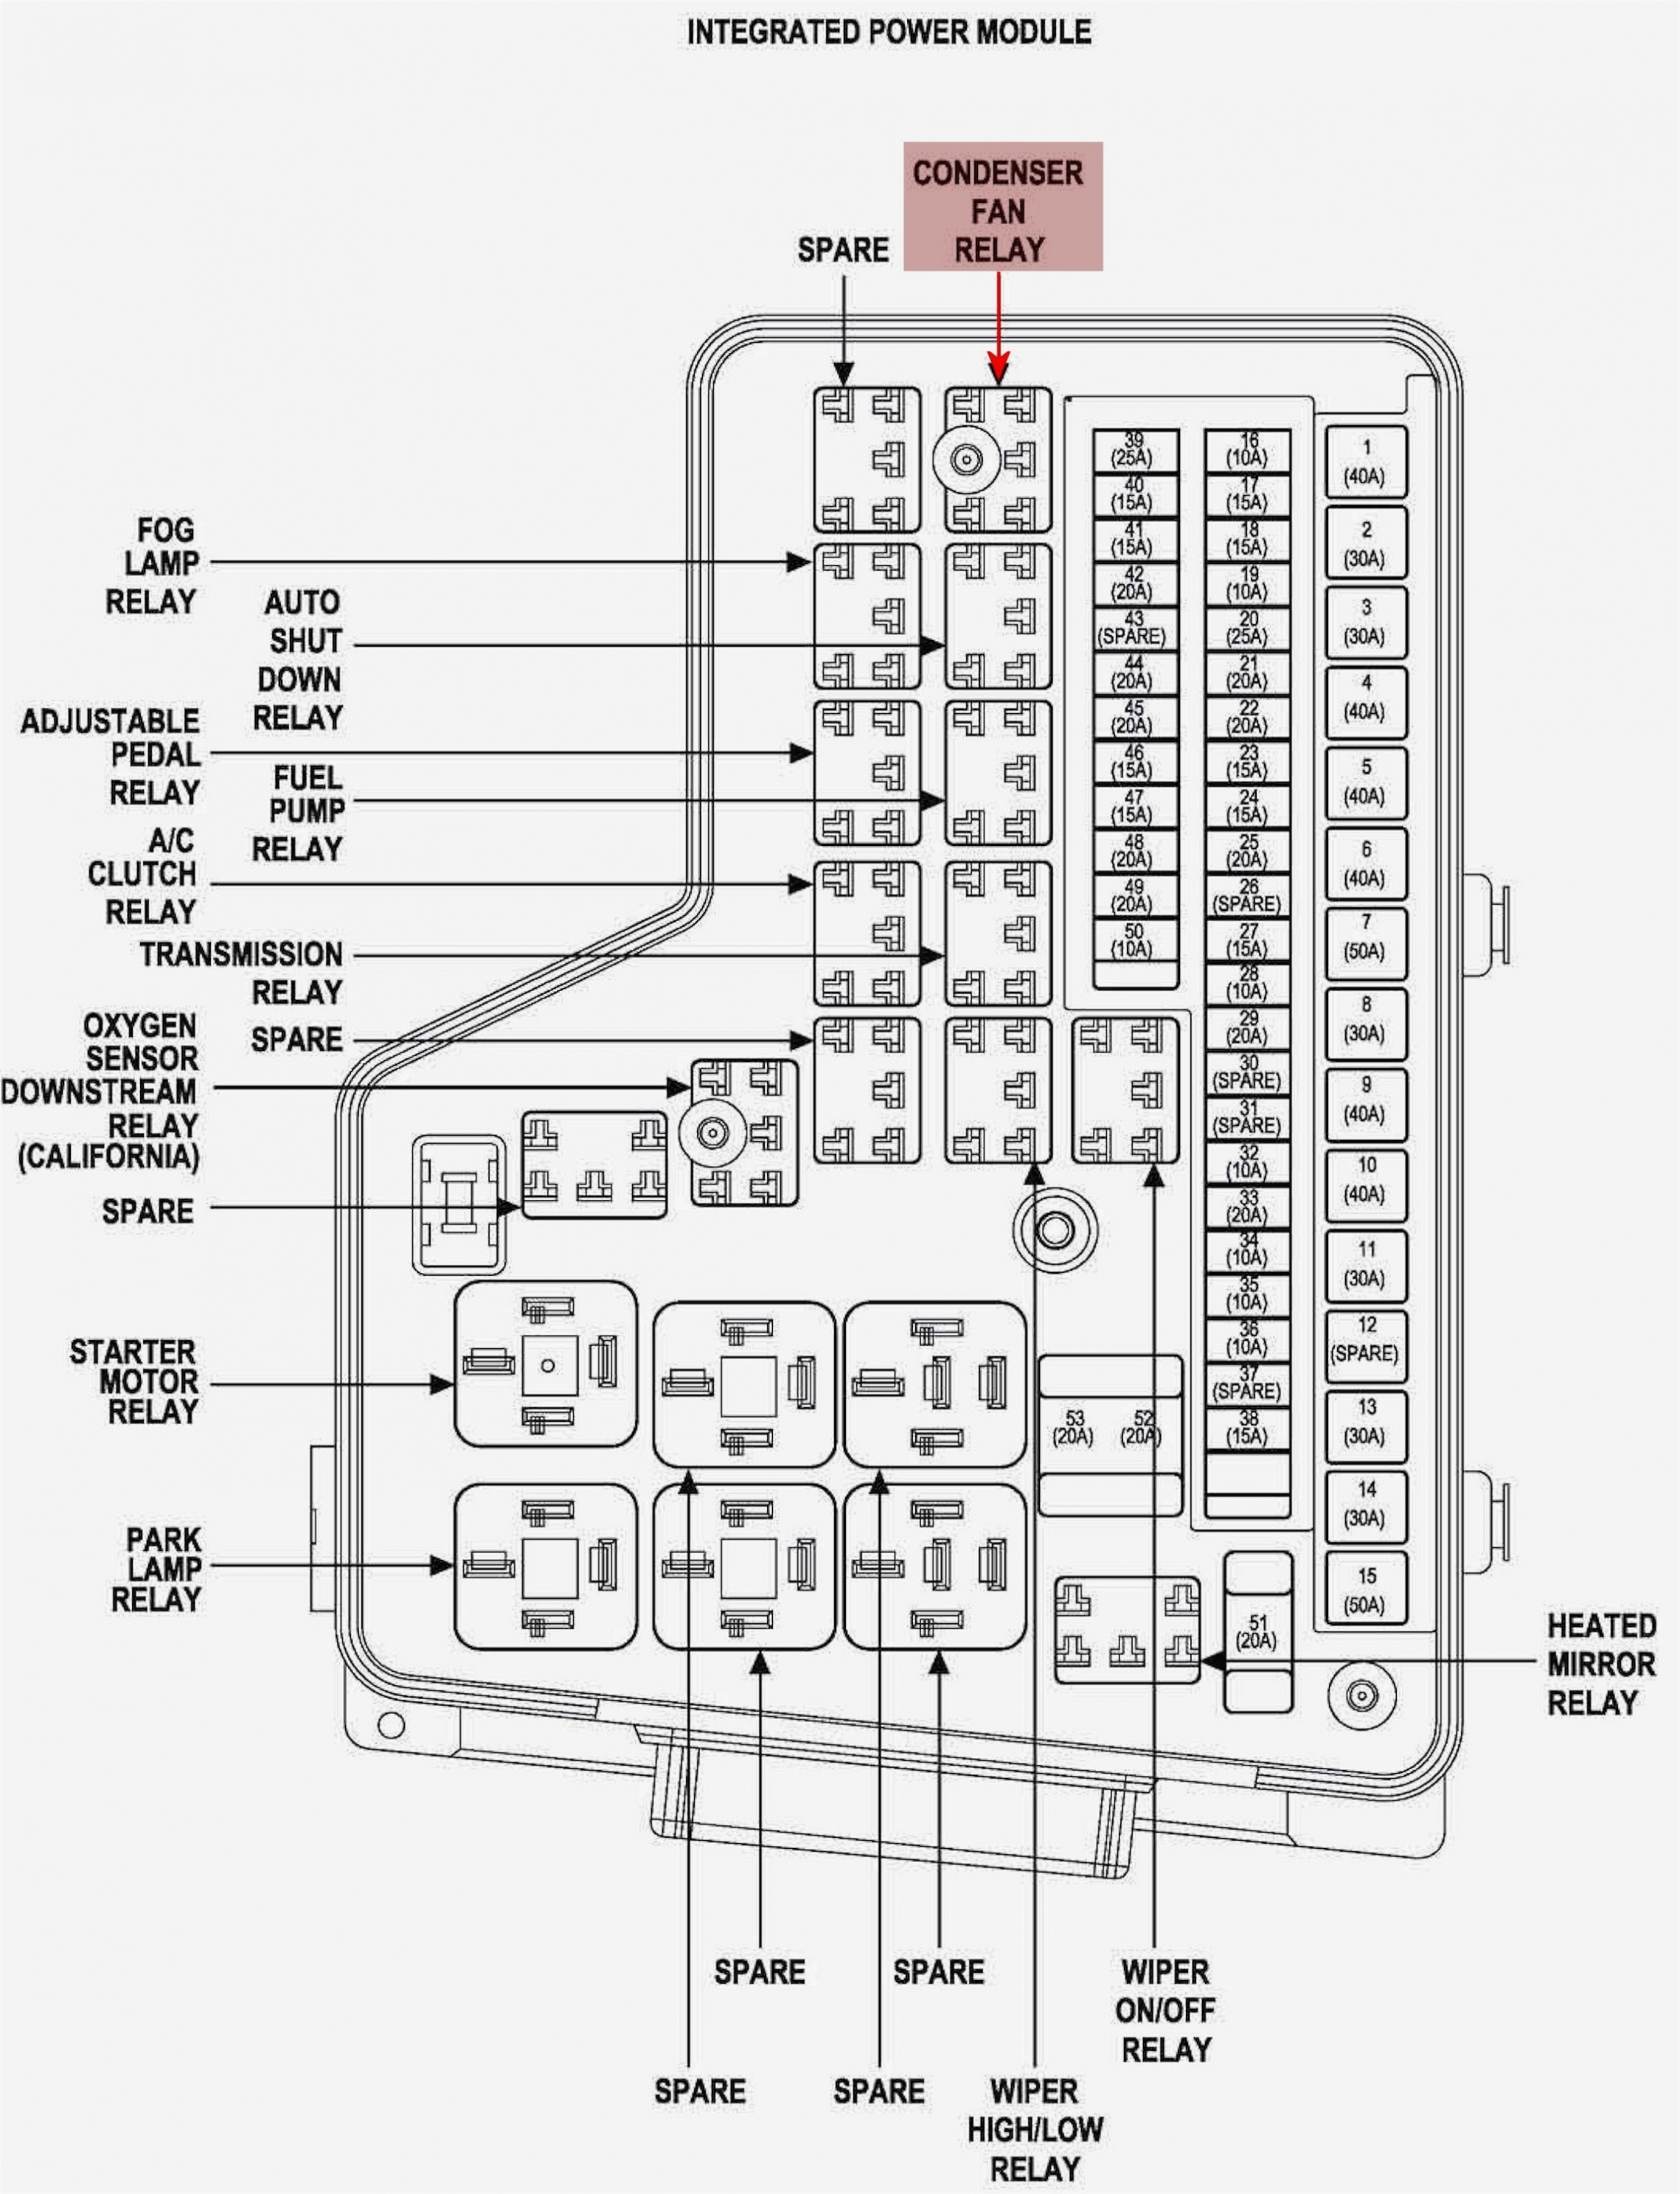 dodge ram van wiring diagram diagram  fuse box diagram for 2002 dodge ram 1500 van full version 2000 dodge ram 1500 van wiring diagram diagram  fuse box diagram for 2002